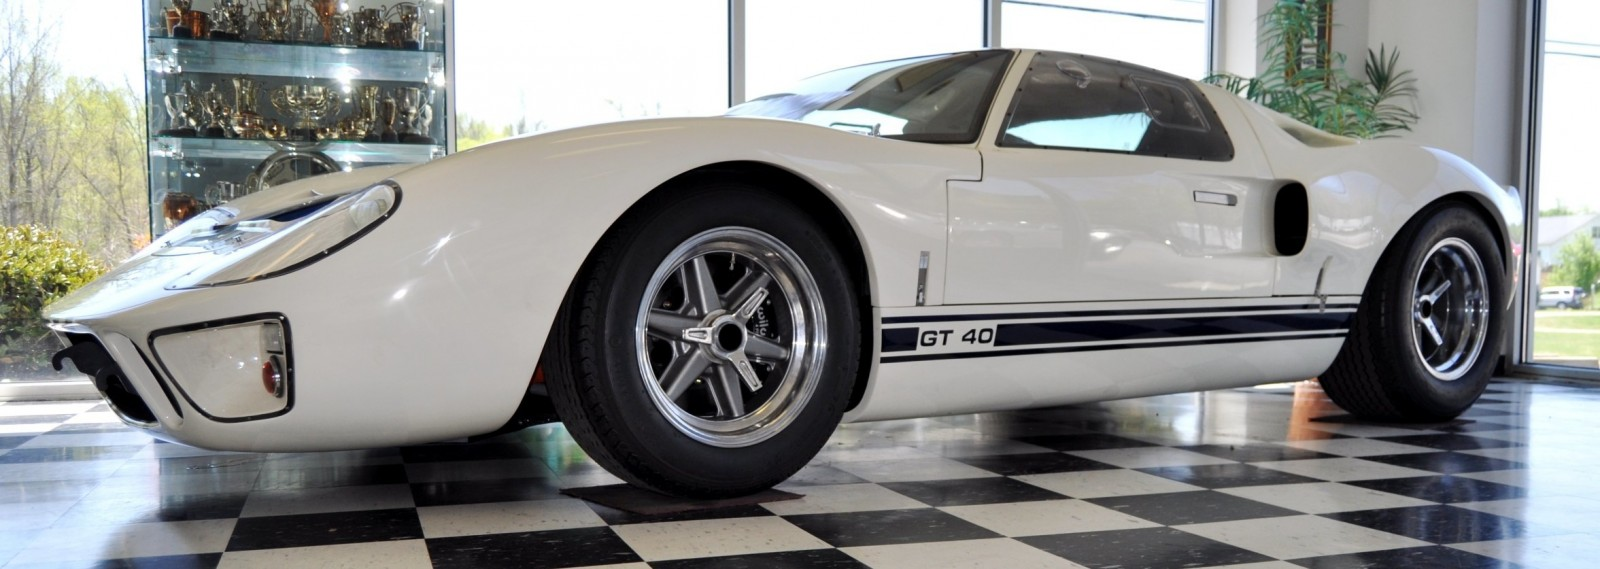 Touring the Olthoff Racing Dream Factory - Superformance GT40s and Cobras Galore 44